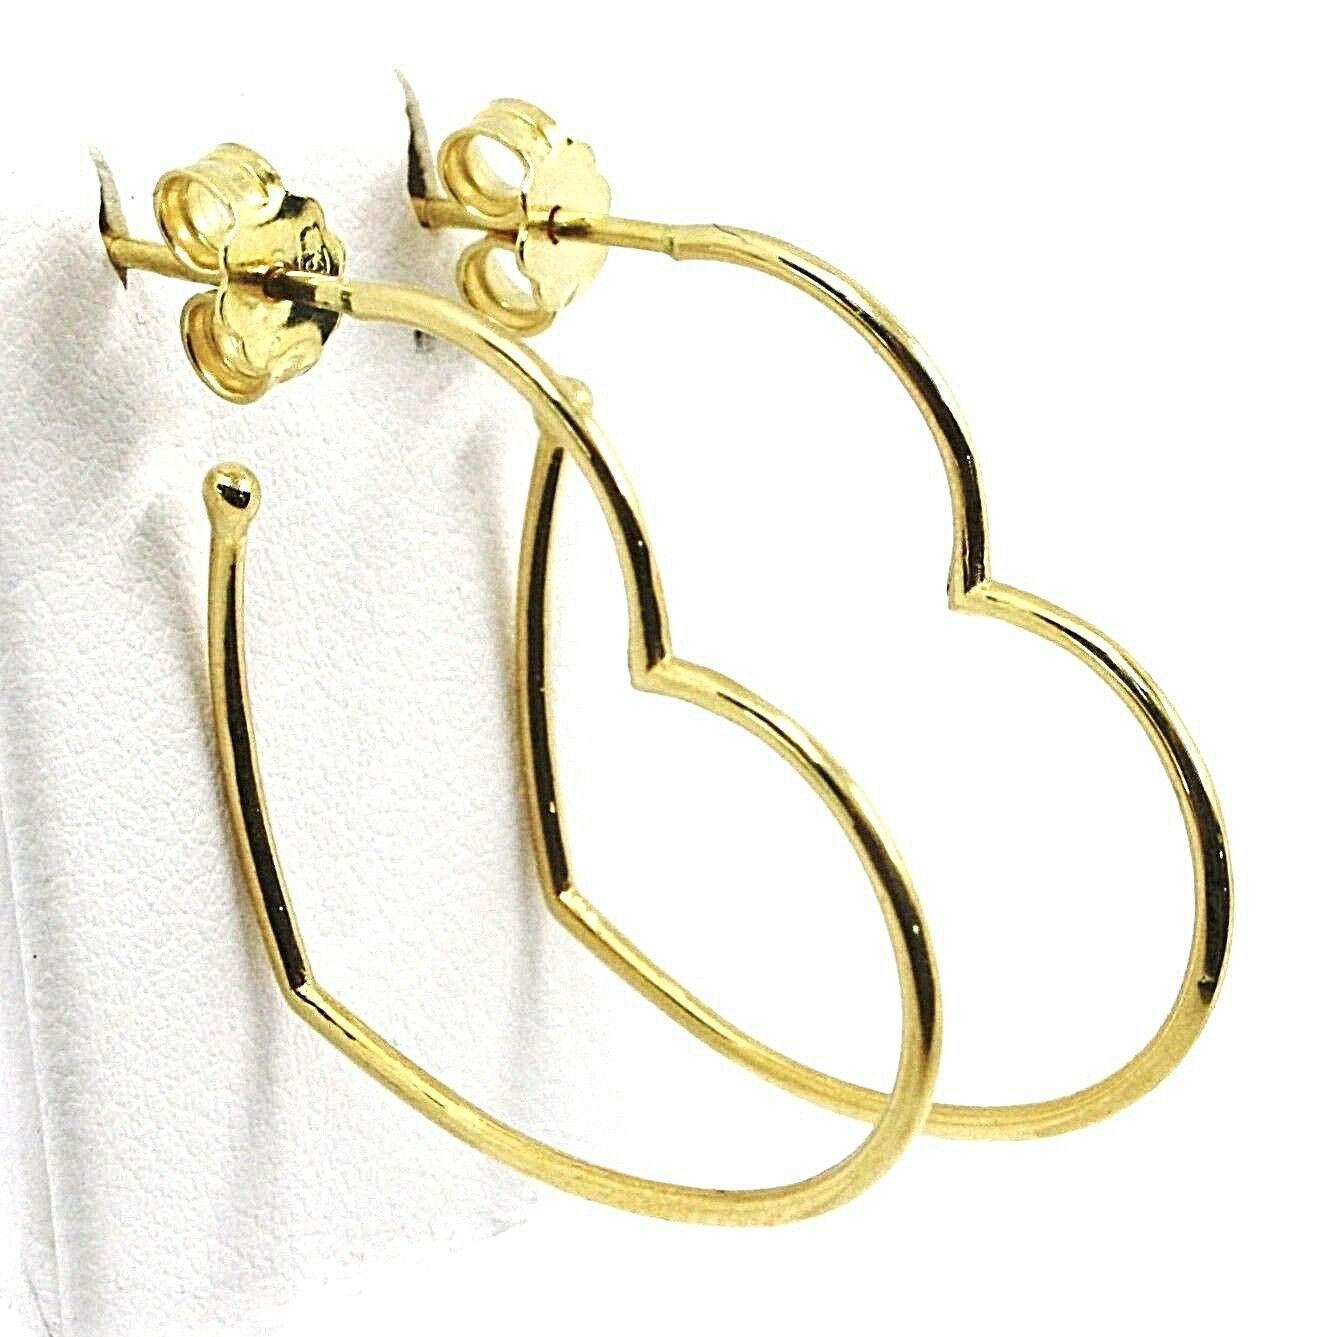 18K YELLOW GOLD PENDANT HEART EARRINGS, 1.1 INCHES LENGTH, MADE IN ITALY